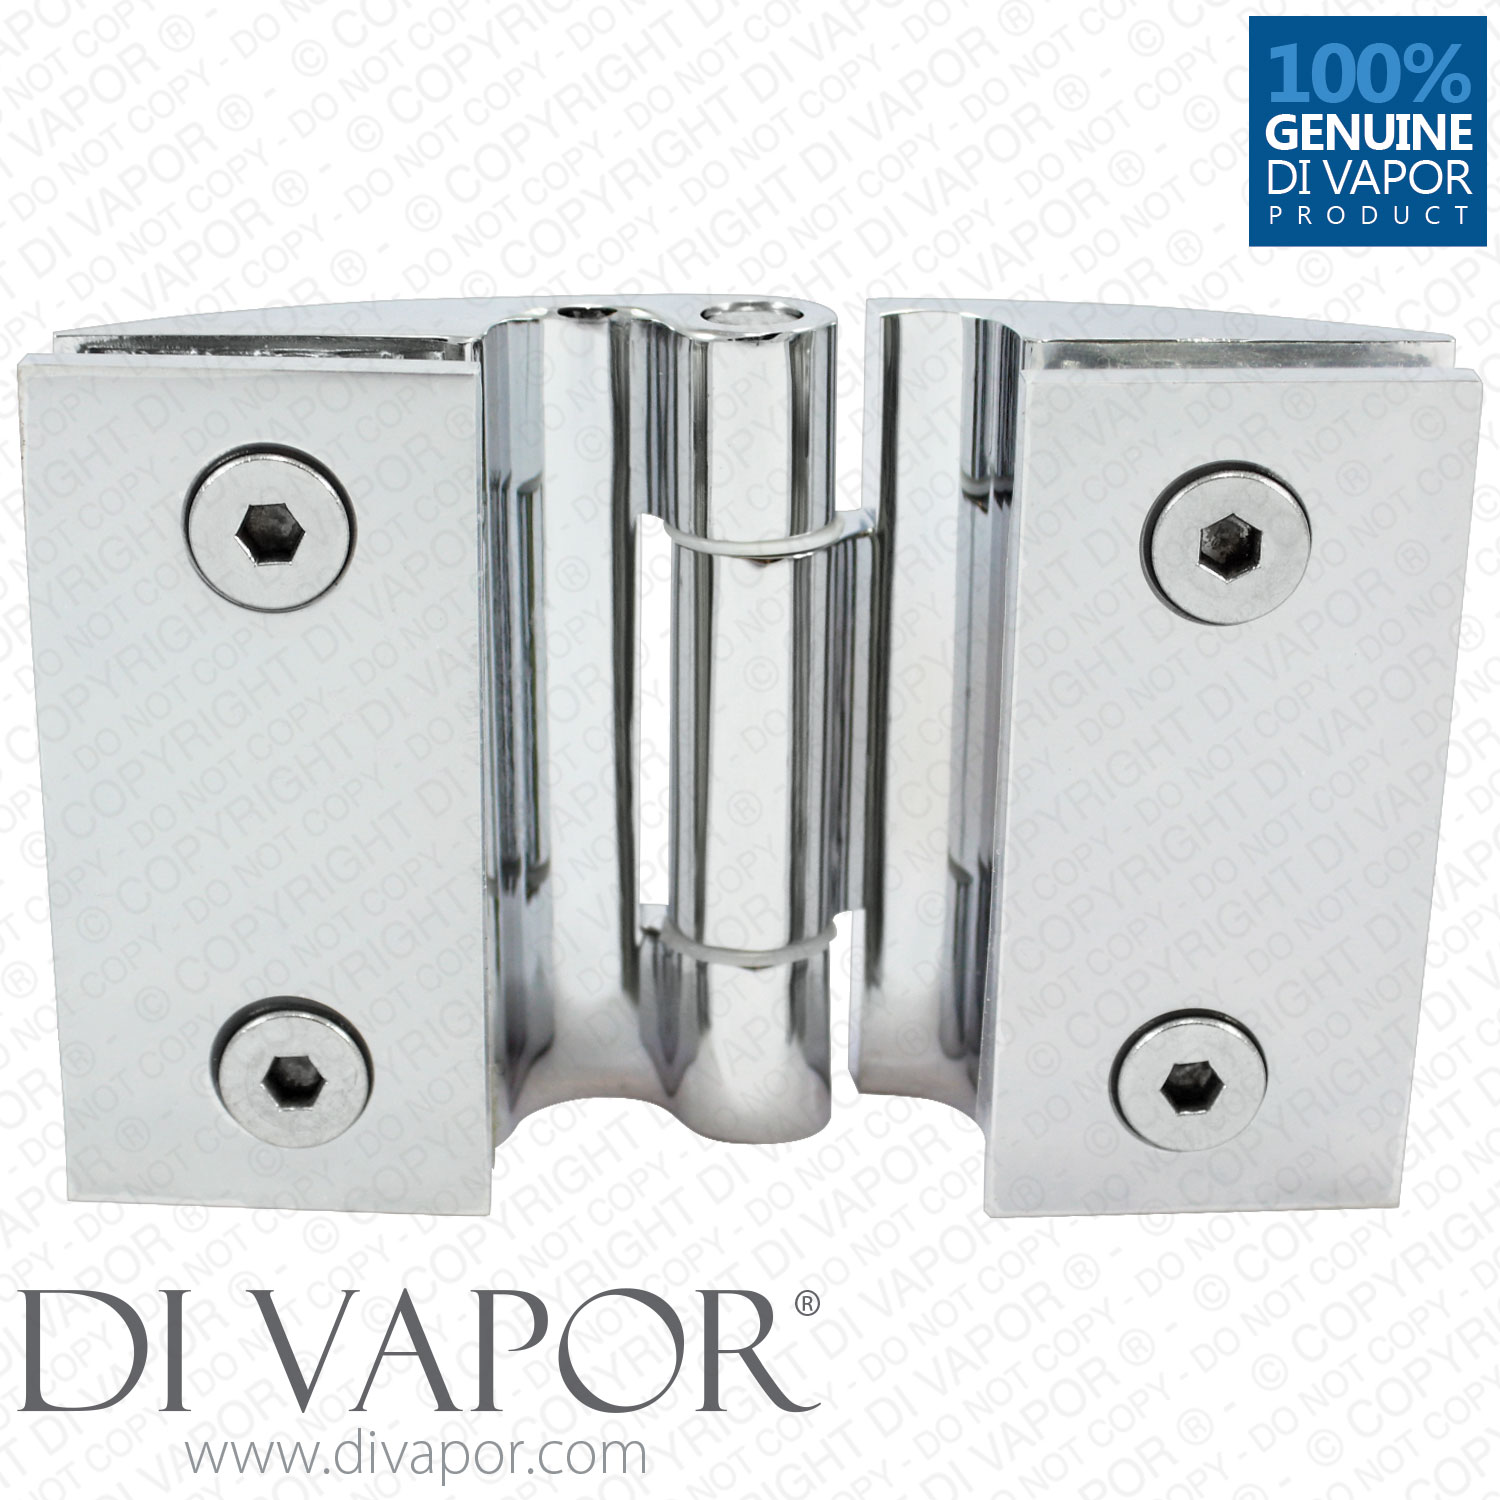 Le Meilleur Clam Shell Door Hinge For Heavy Glass Shower Door Glass Ce Mois Ci